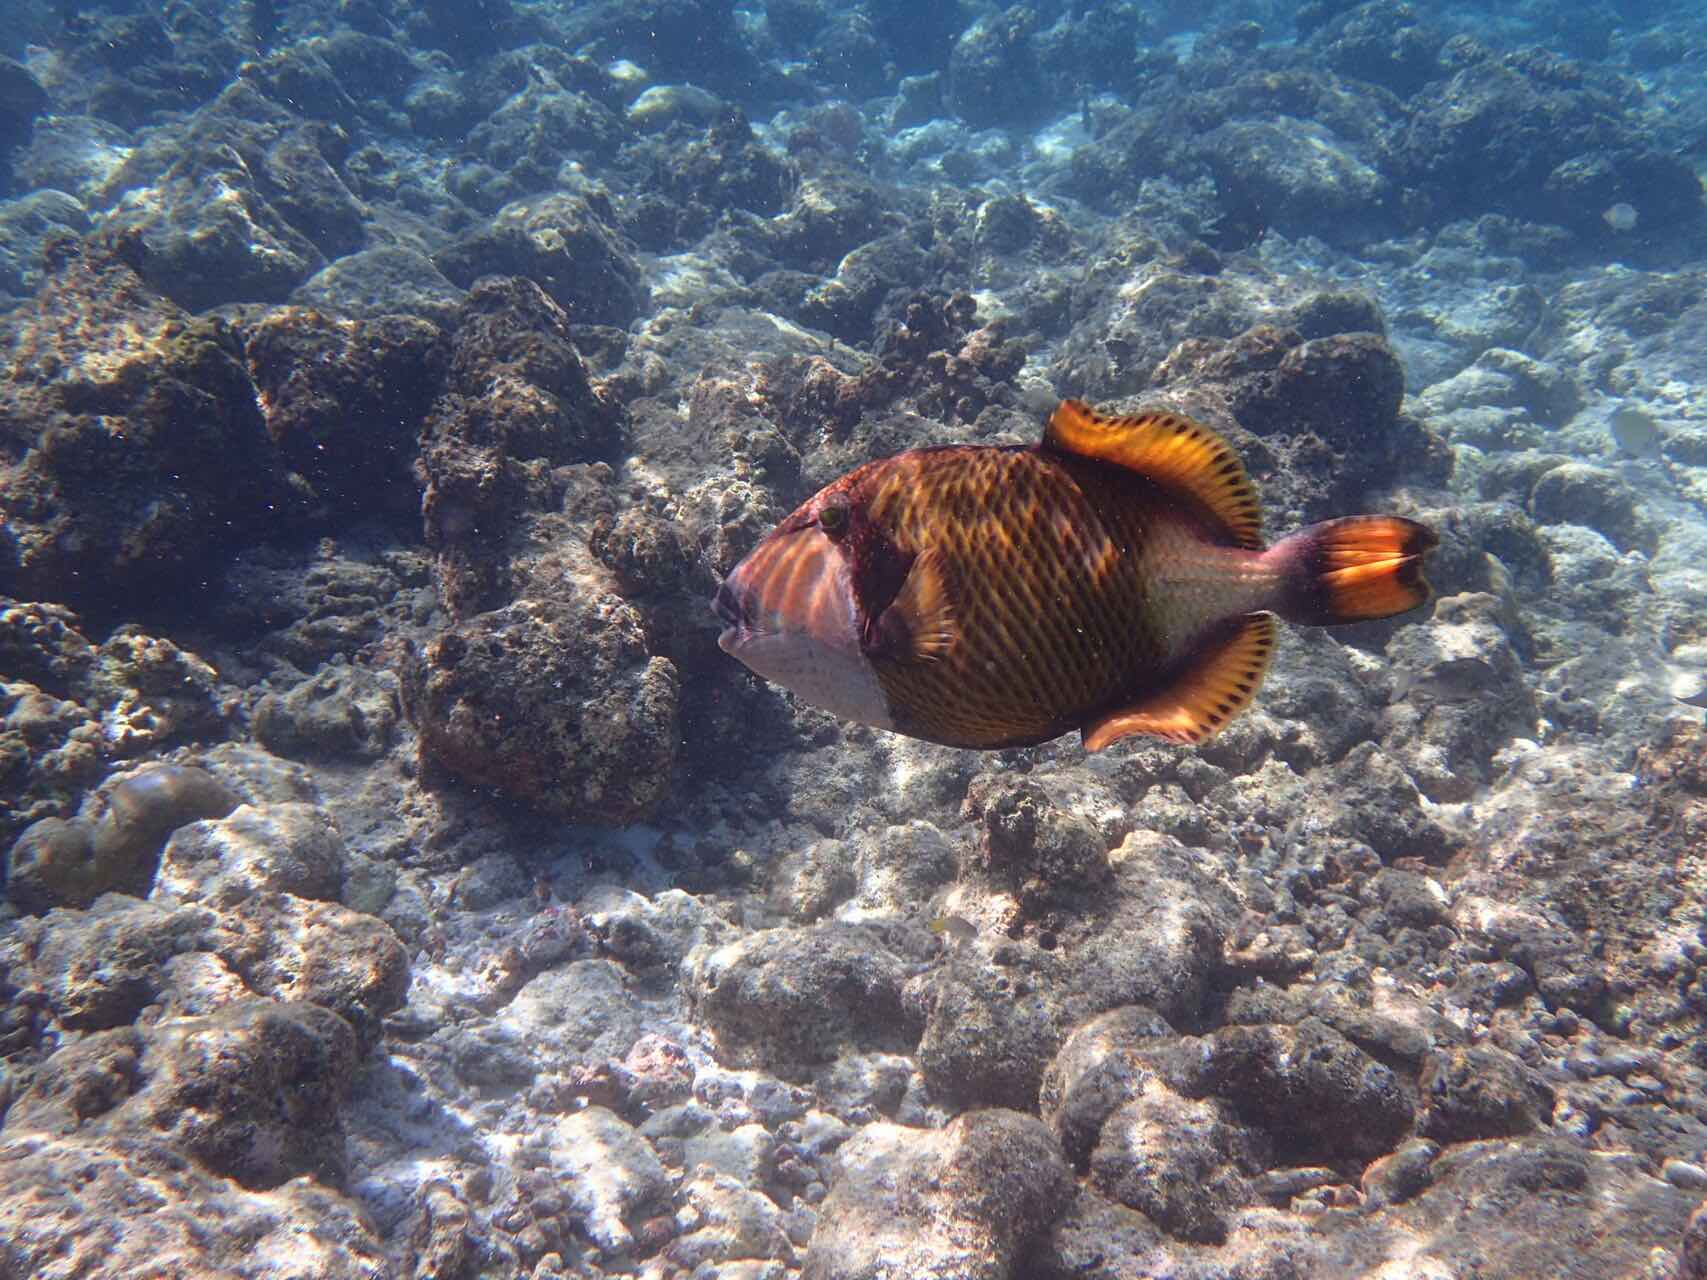 maldives-oblu-by-atmosphere-at-helengeli-house-reef-holiday-review-feedback-invite-to-paradise-quentin-kate-hulm.jpg